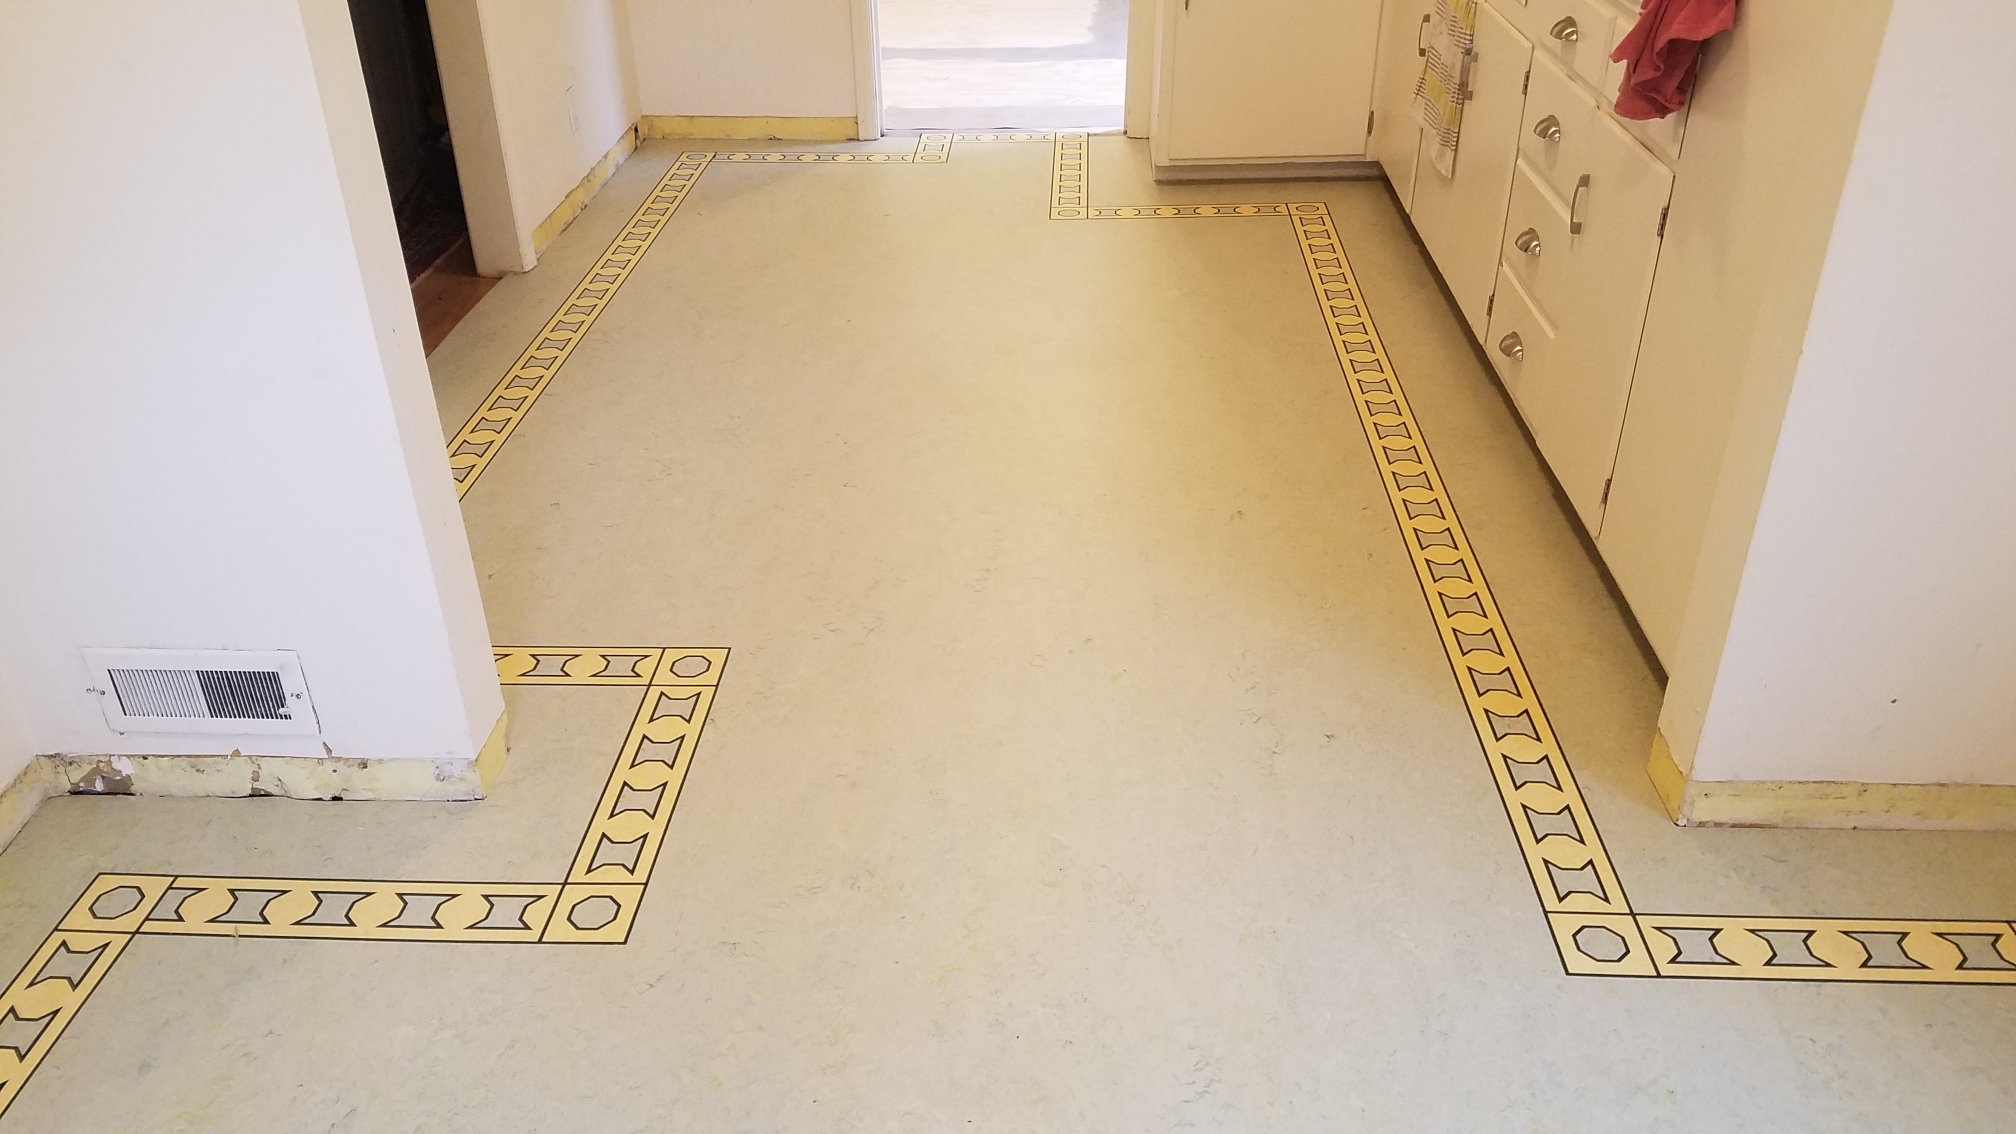 Custom border feature on linoleum floor side view